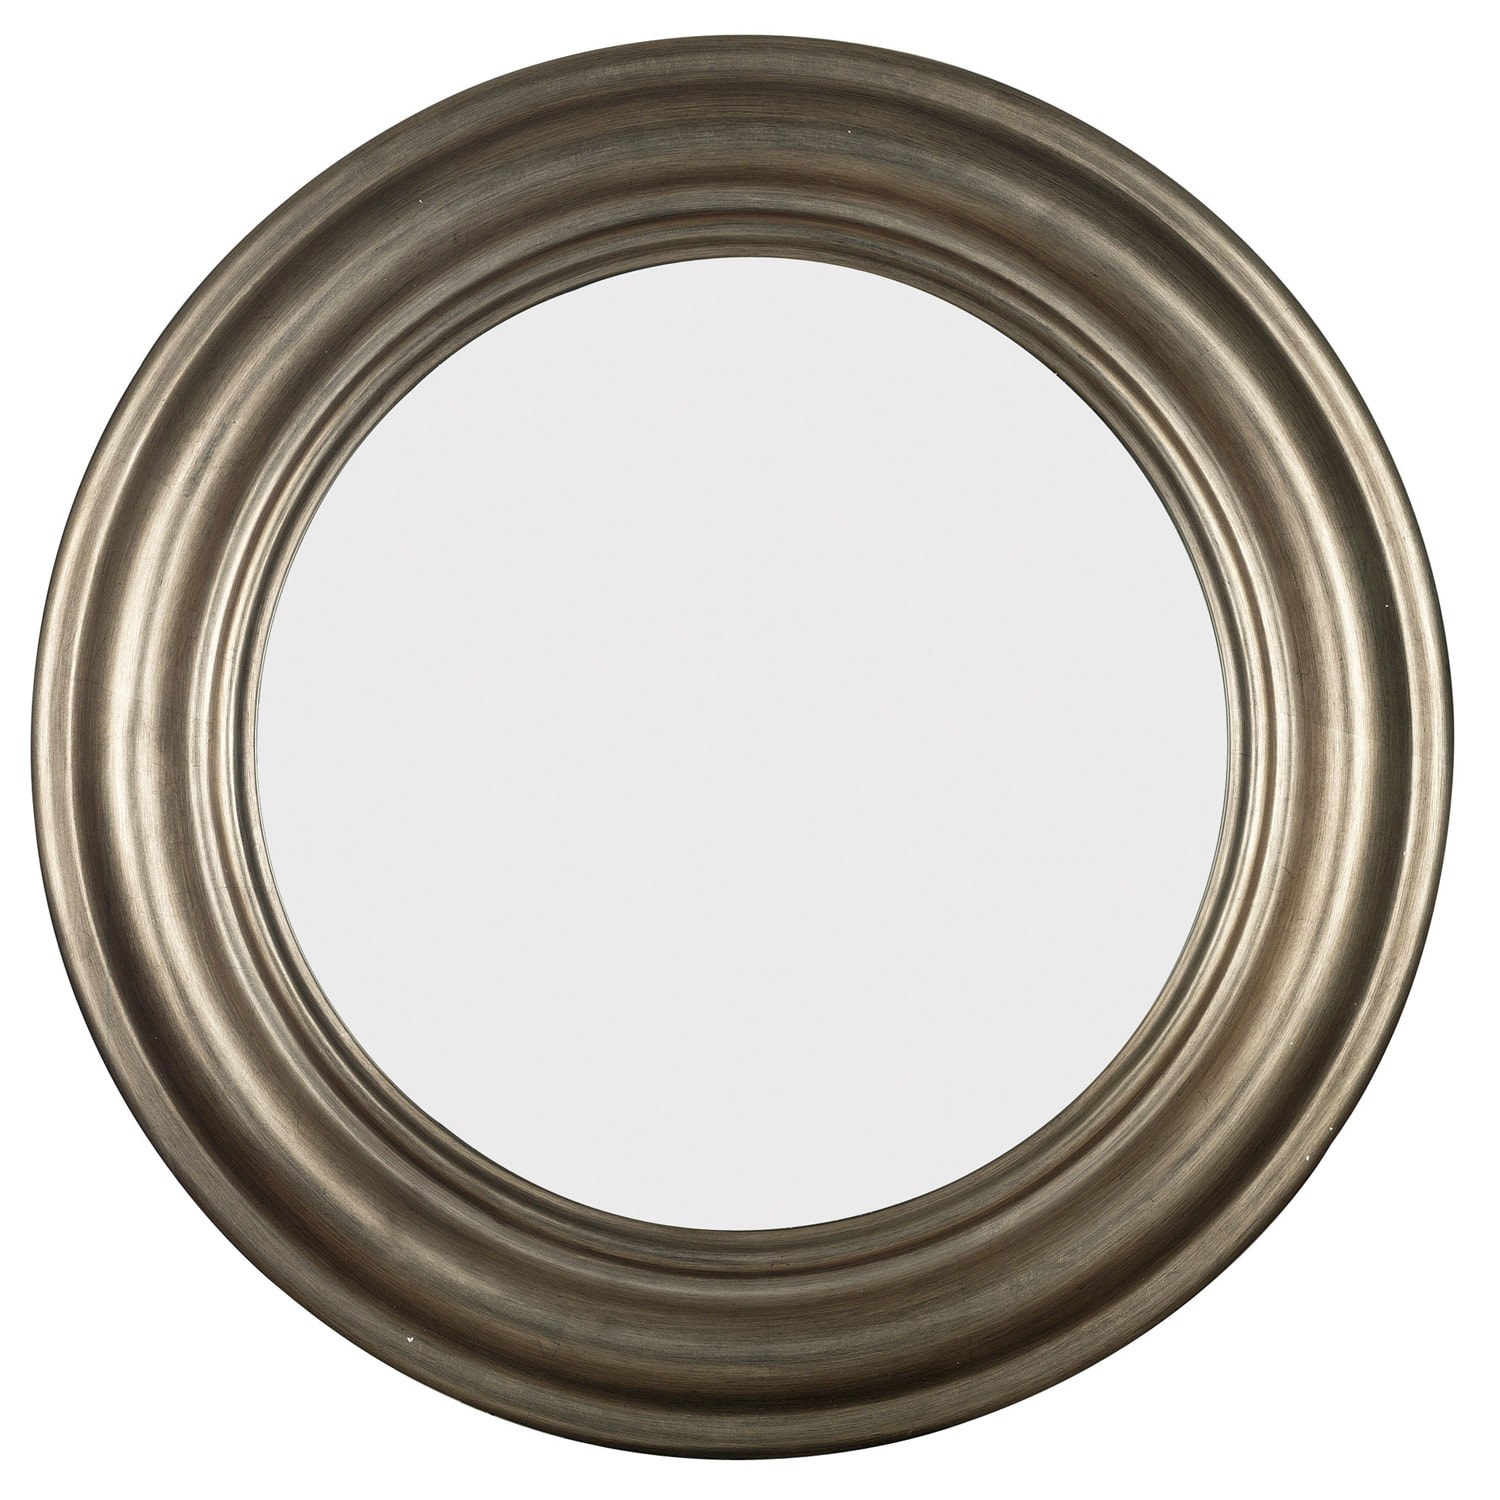 Pasco Round Antique Silver Wall Mirror Free Shipping Today Throughout Round Antique Mirror (View 1 of 15)